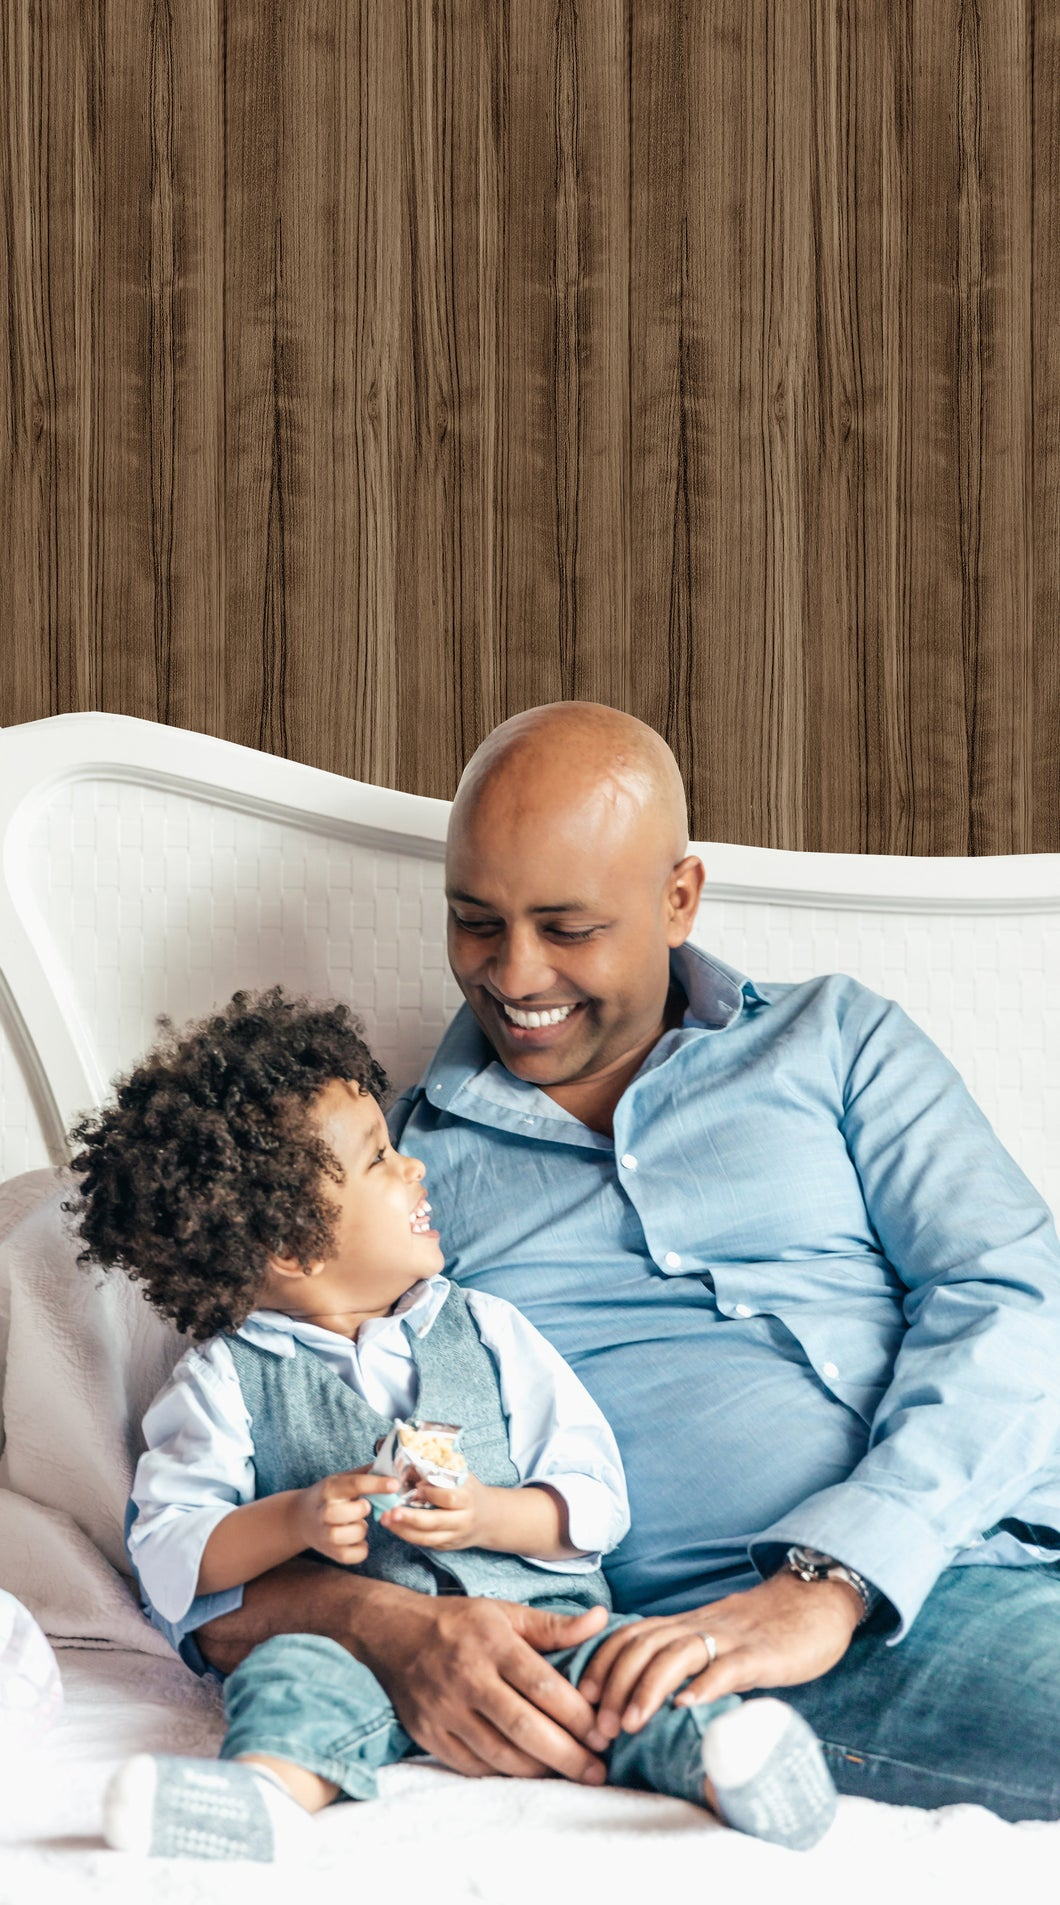 happy dad with child. sitting in front of wood grain wallpaper.